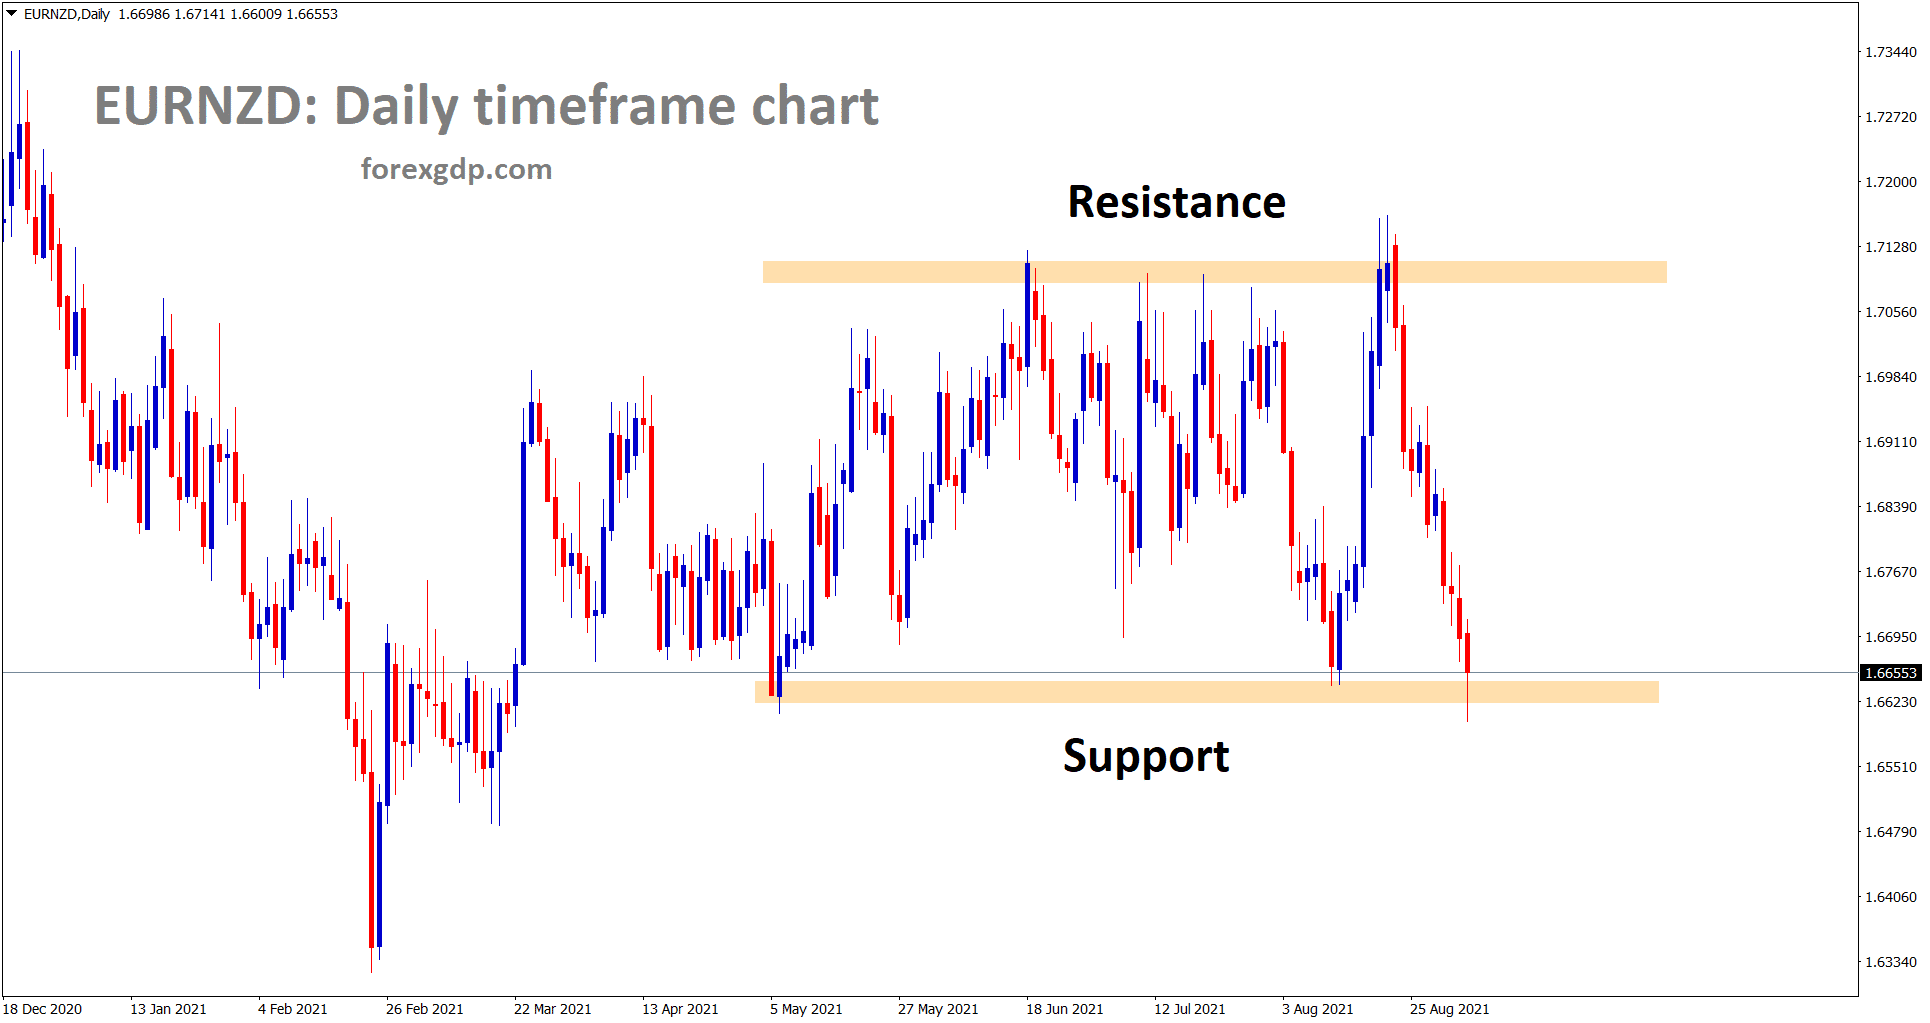 EURNZD has reached the support area again in the daily timeframe